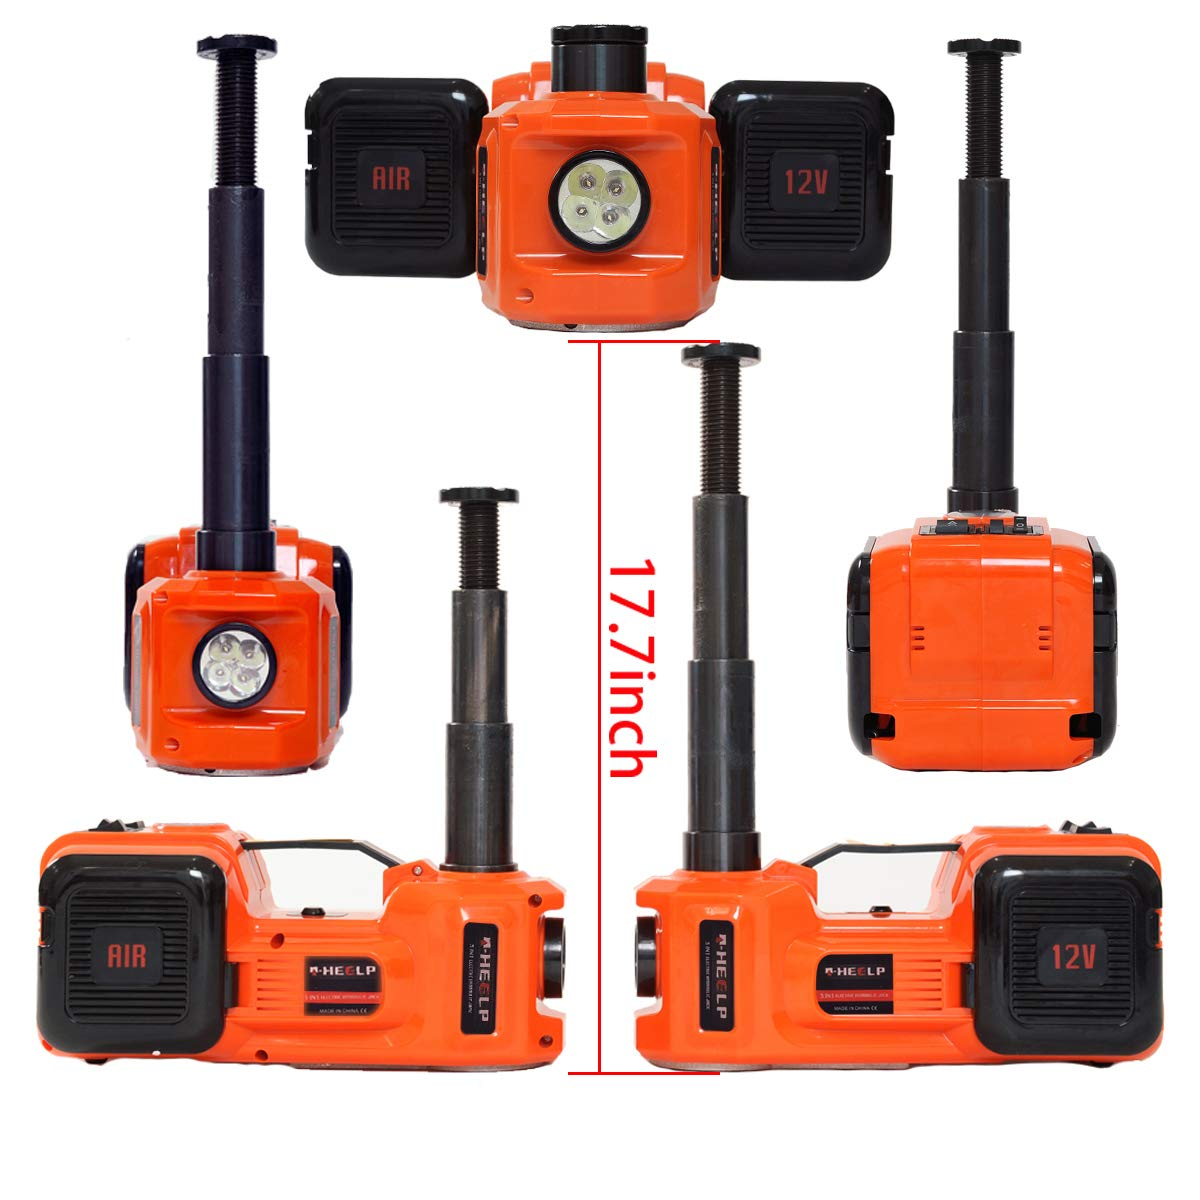 11000lb E-HEELP 5.0T 12V DC Electric Hydraulic Floor Jack and Tire Inflator Pump and LED Flashlight 3 in 1 Set Tool Kit ZSJACK 5559006752